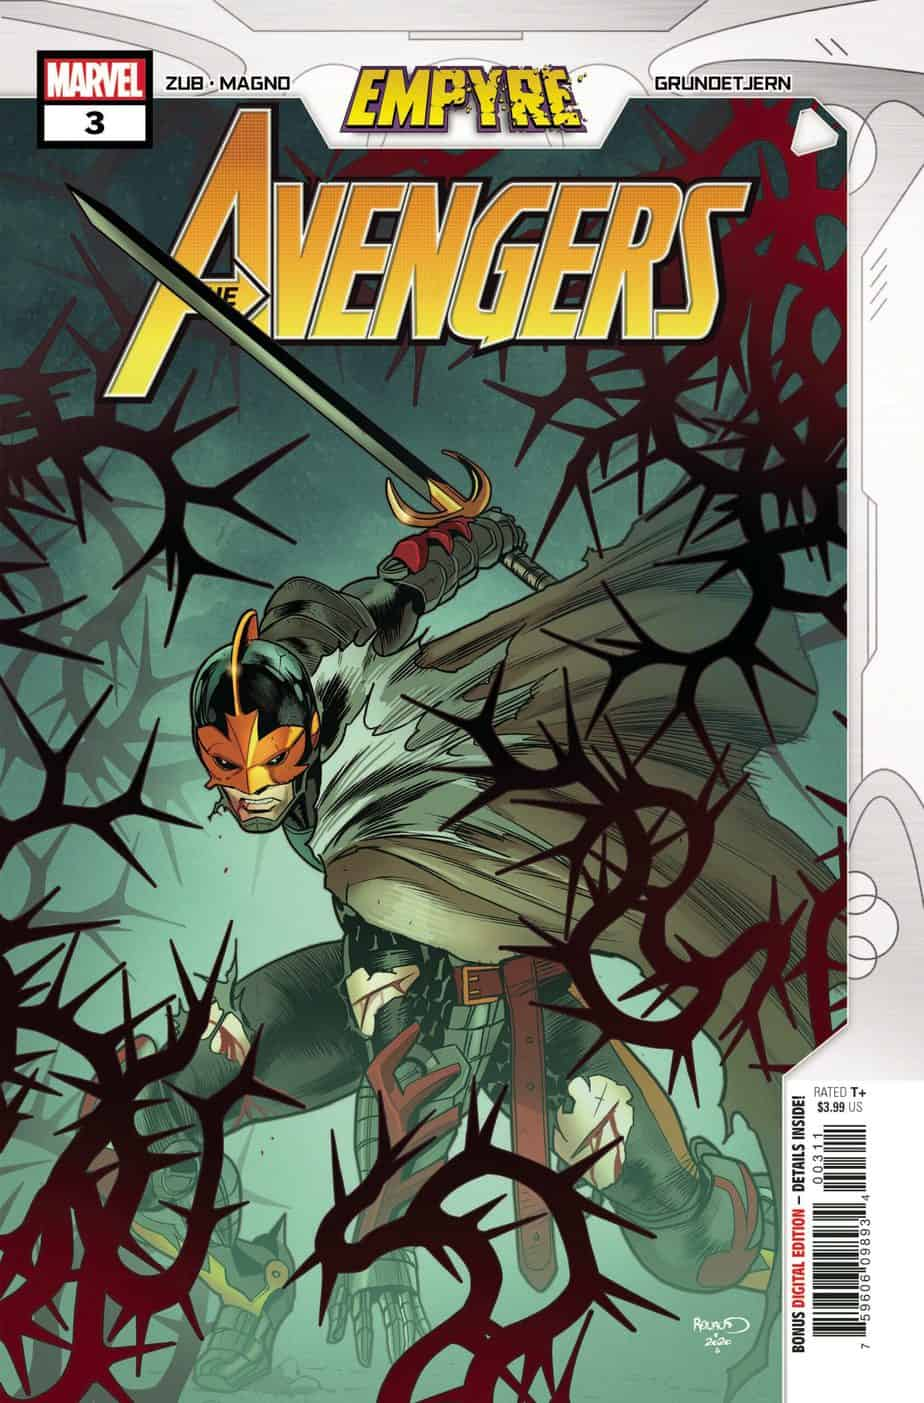 EMPYRE: Avengers #3 - Cover A